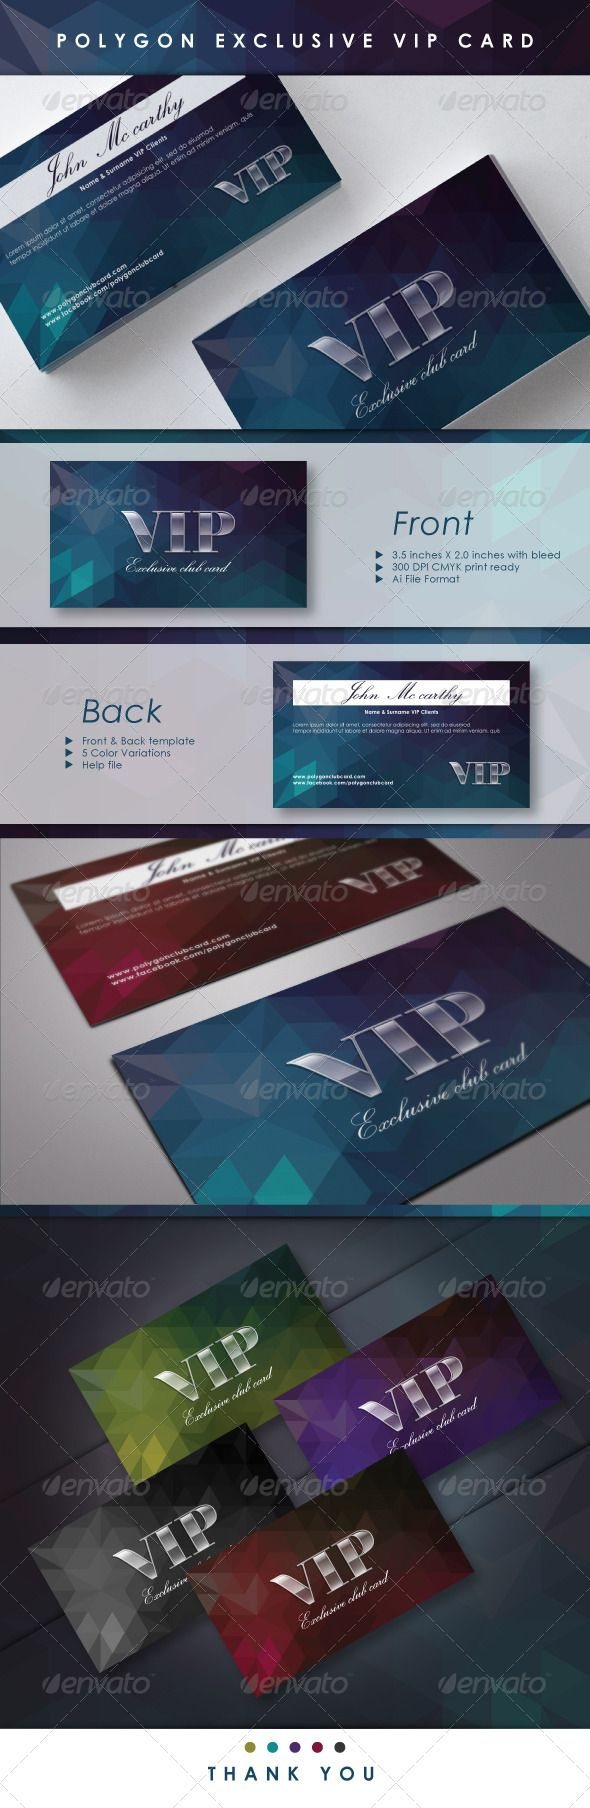 Polygon Exclusive Vip Card Graphicriver Graphics Pinterest